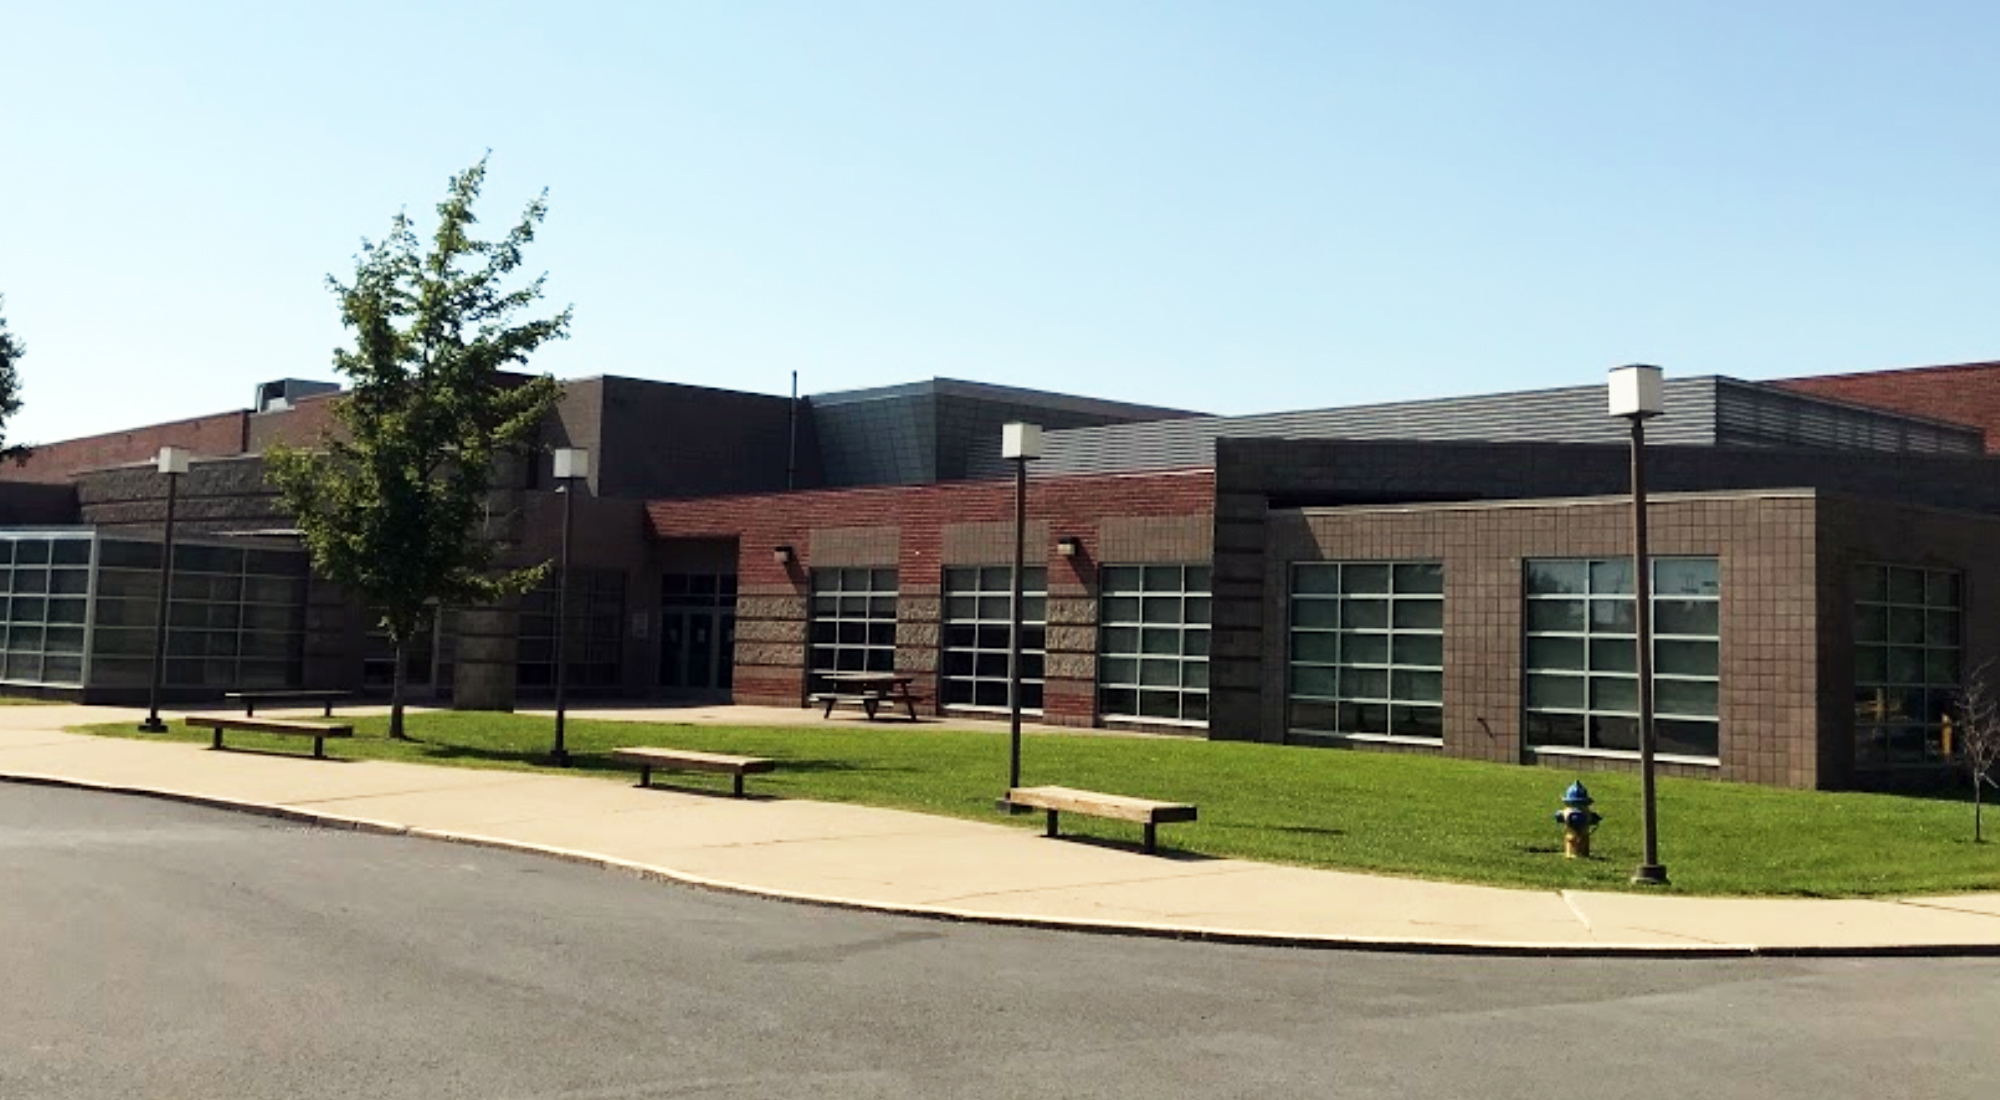 Beckley Stratton Middle School